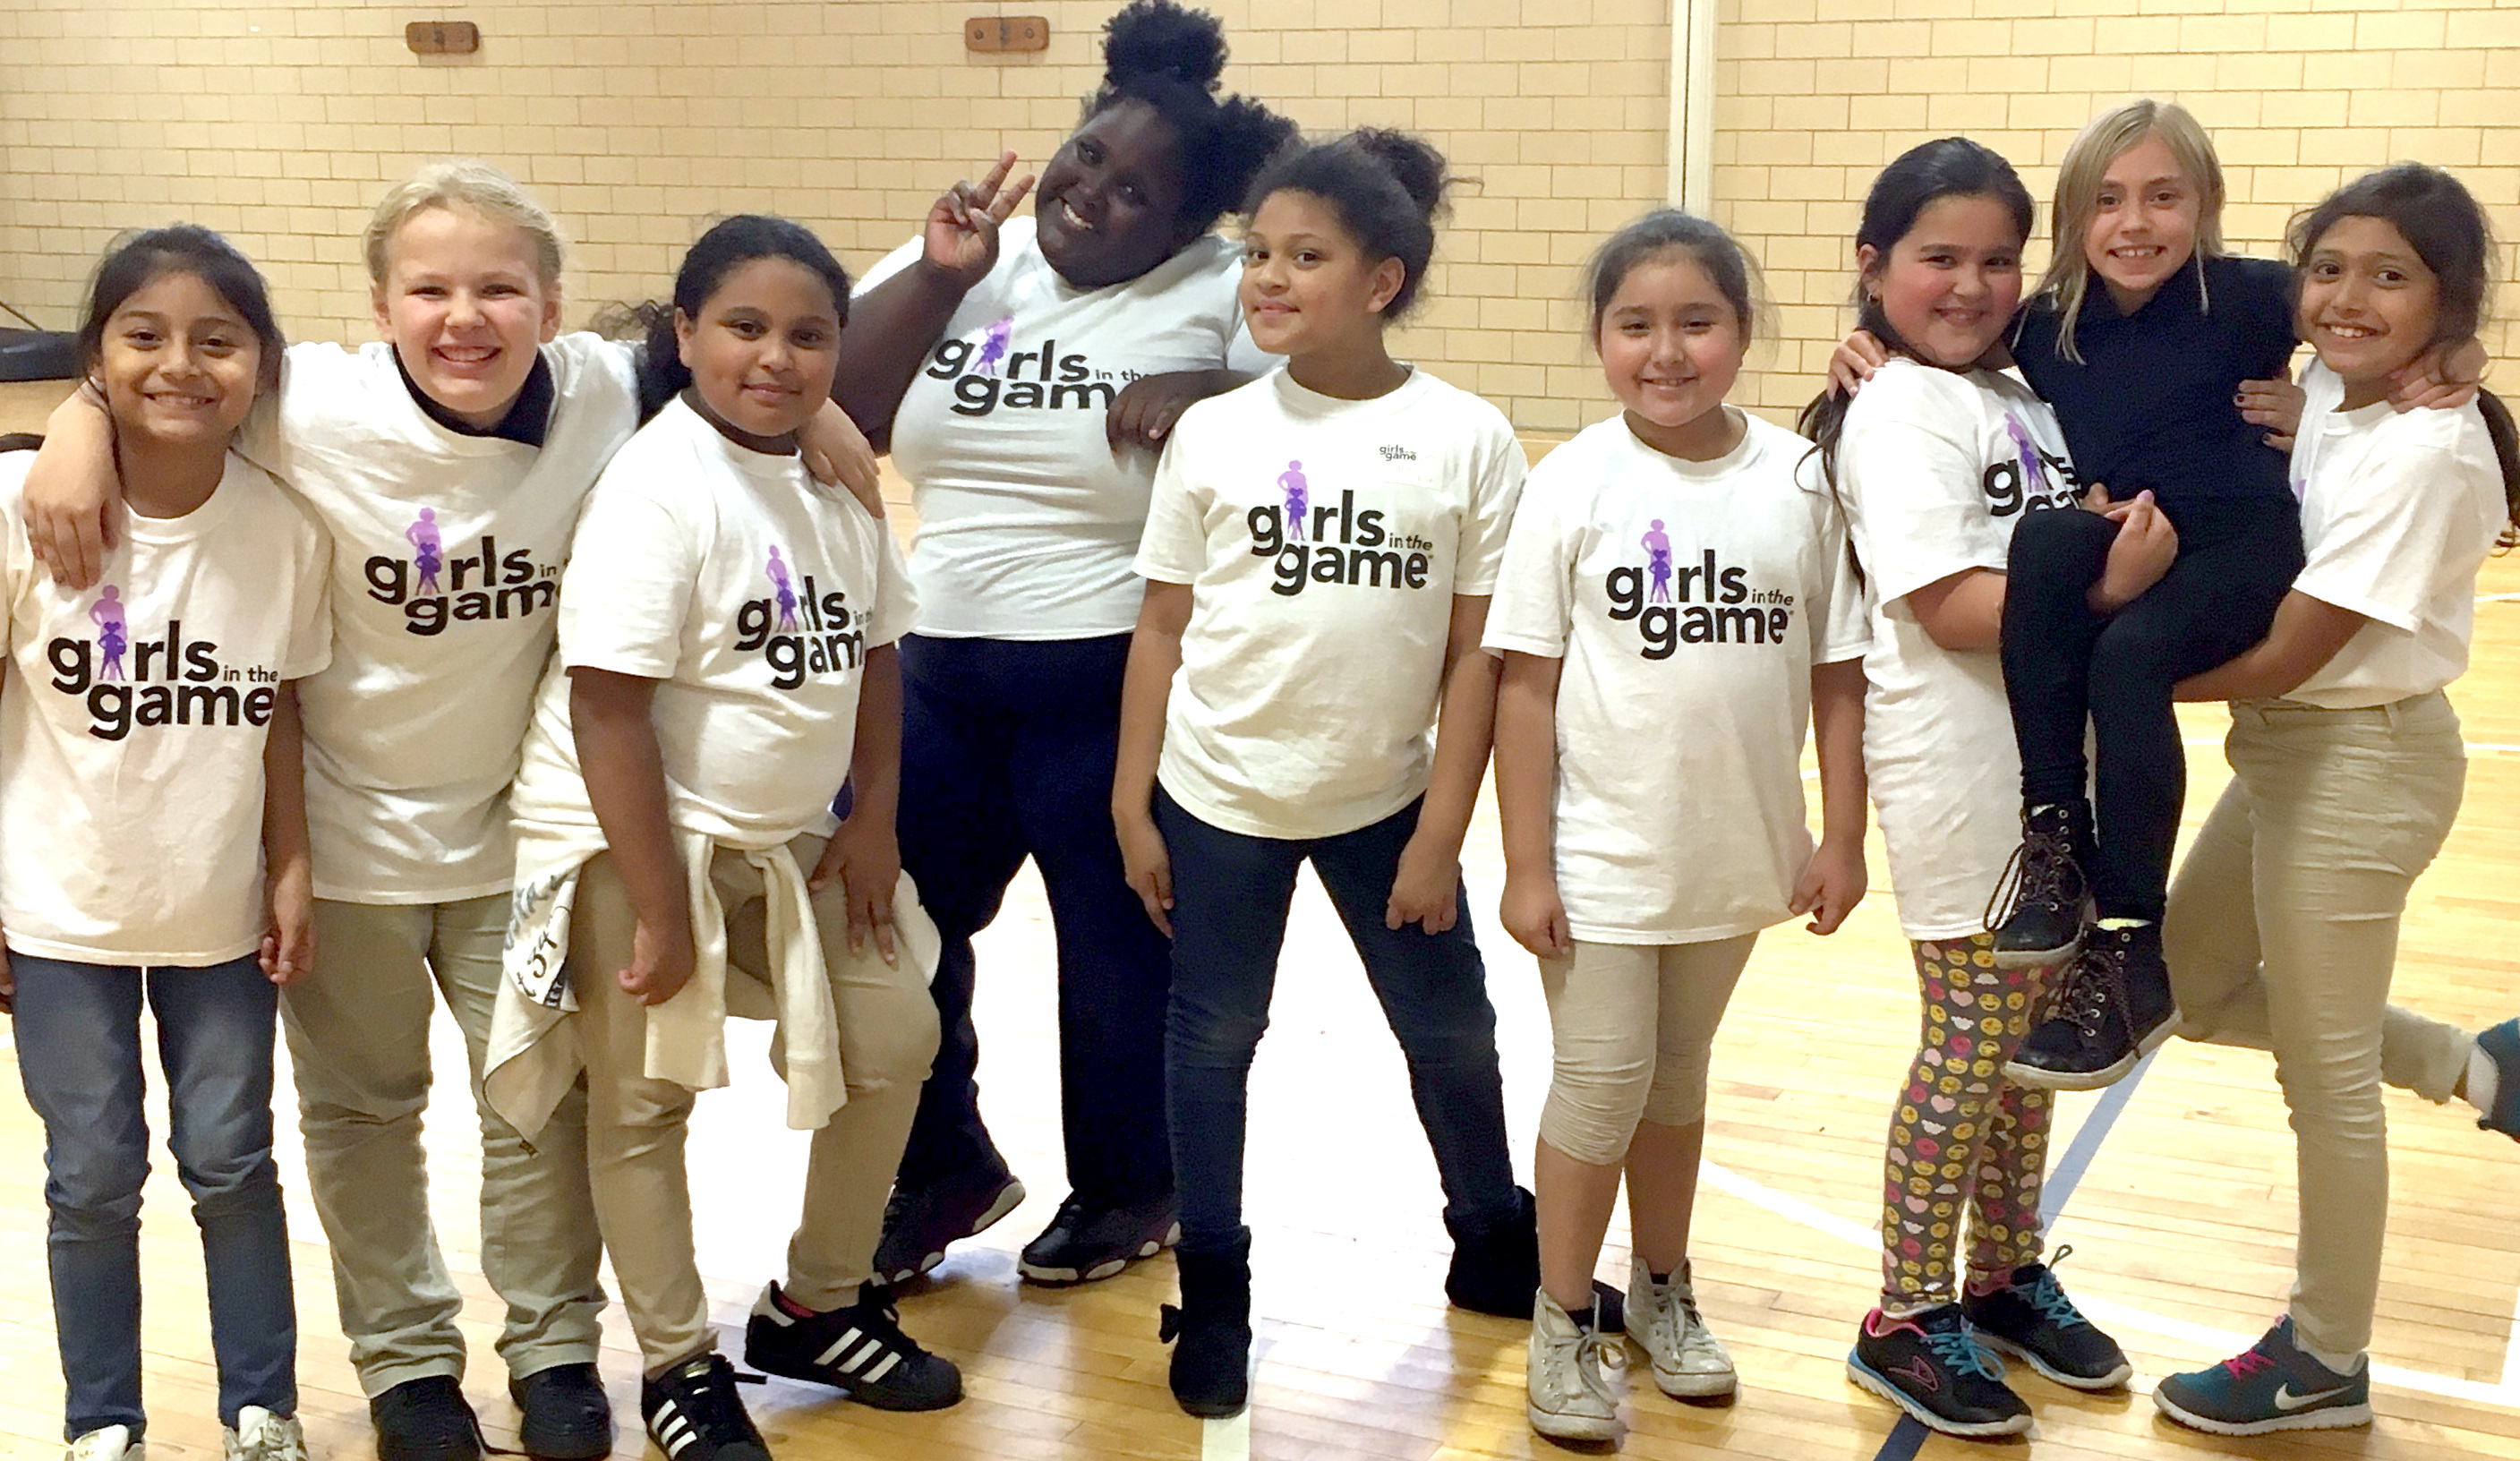 A group of girls wearing Girls in the Game T-shirts in a Gymnasium